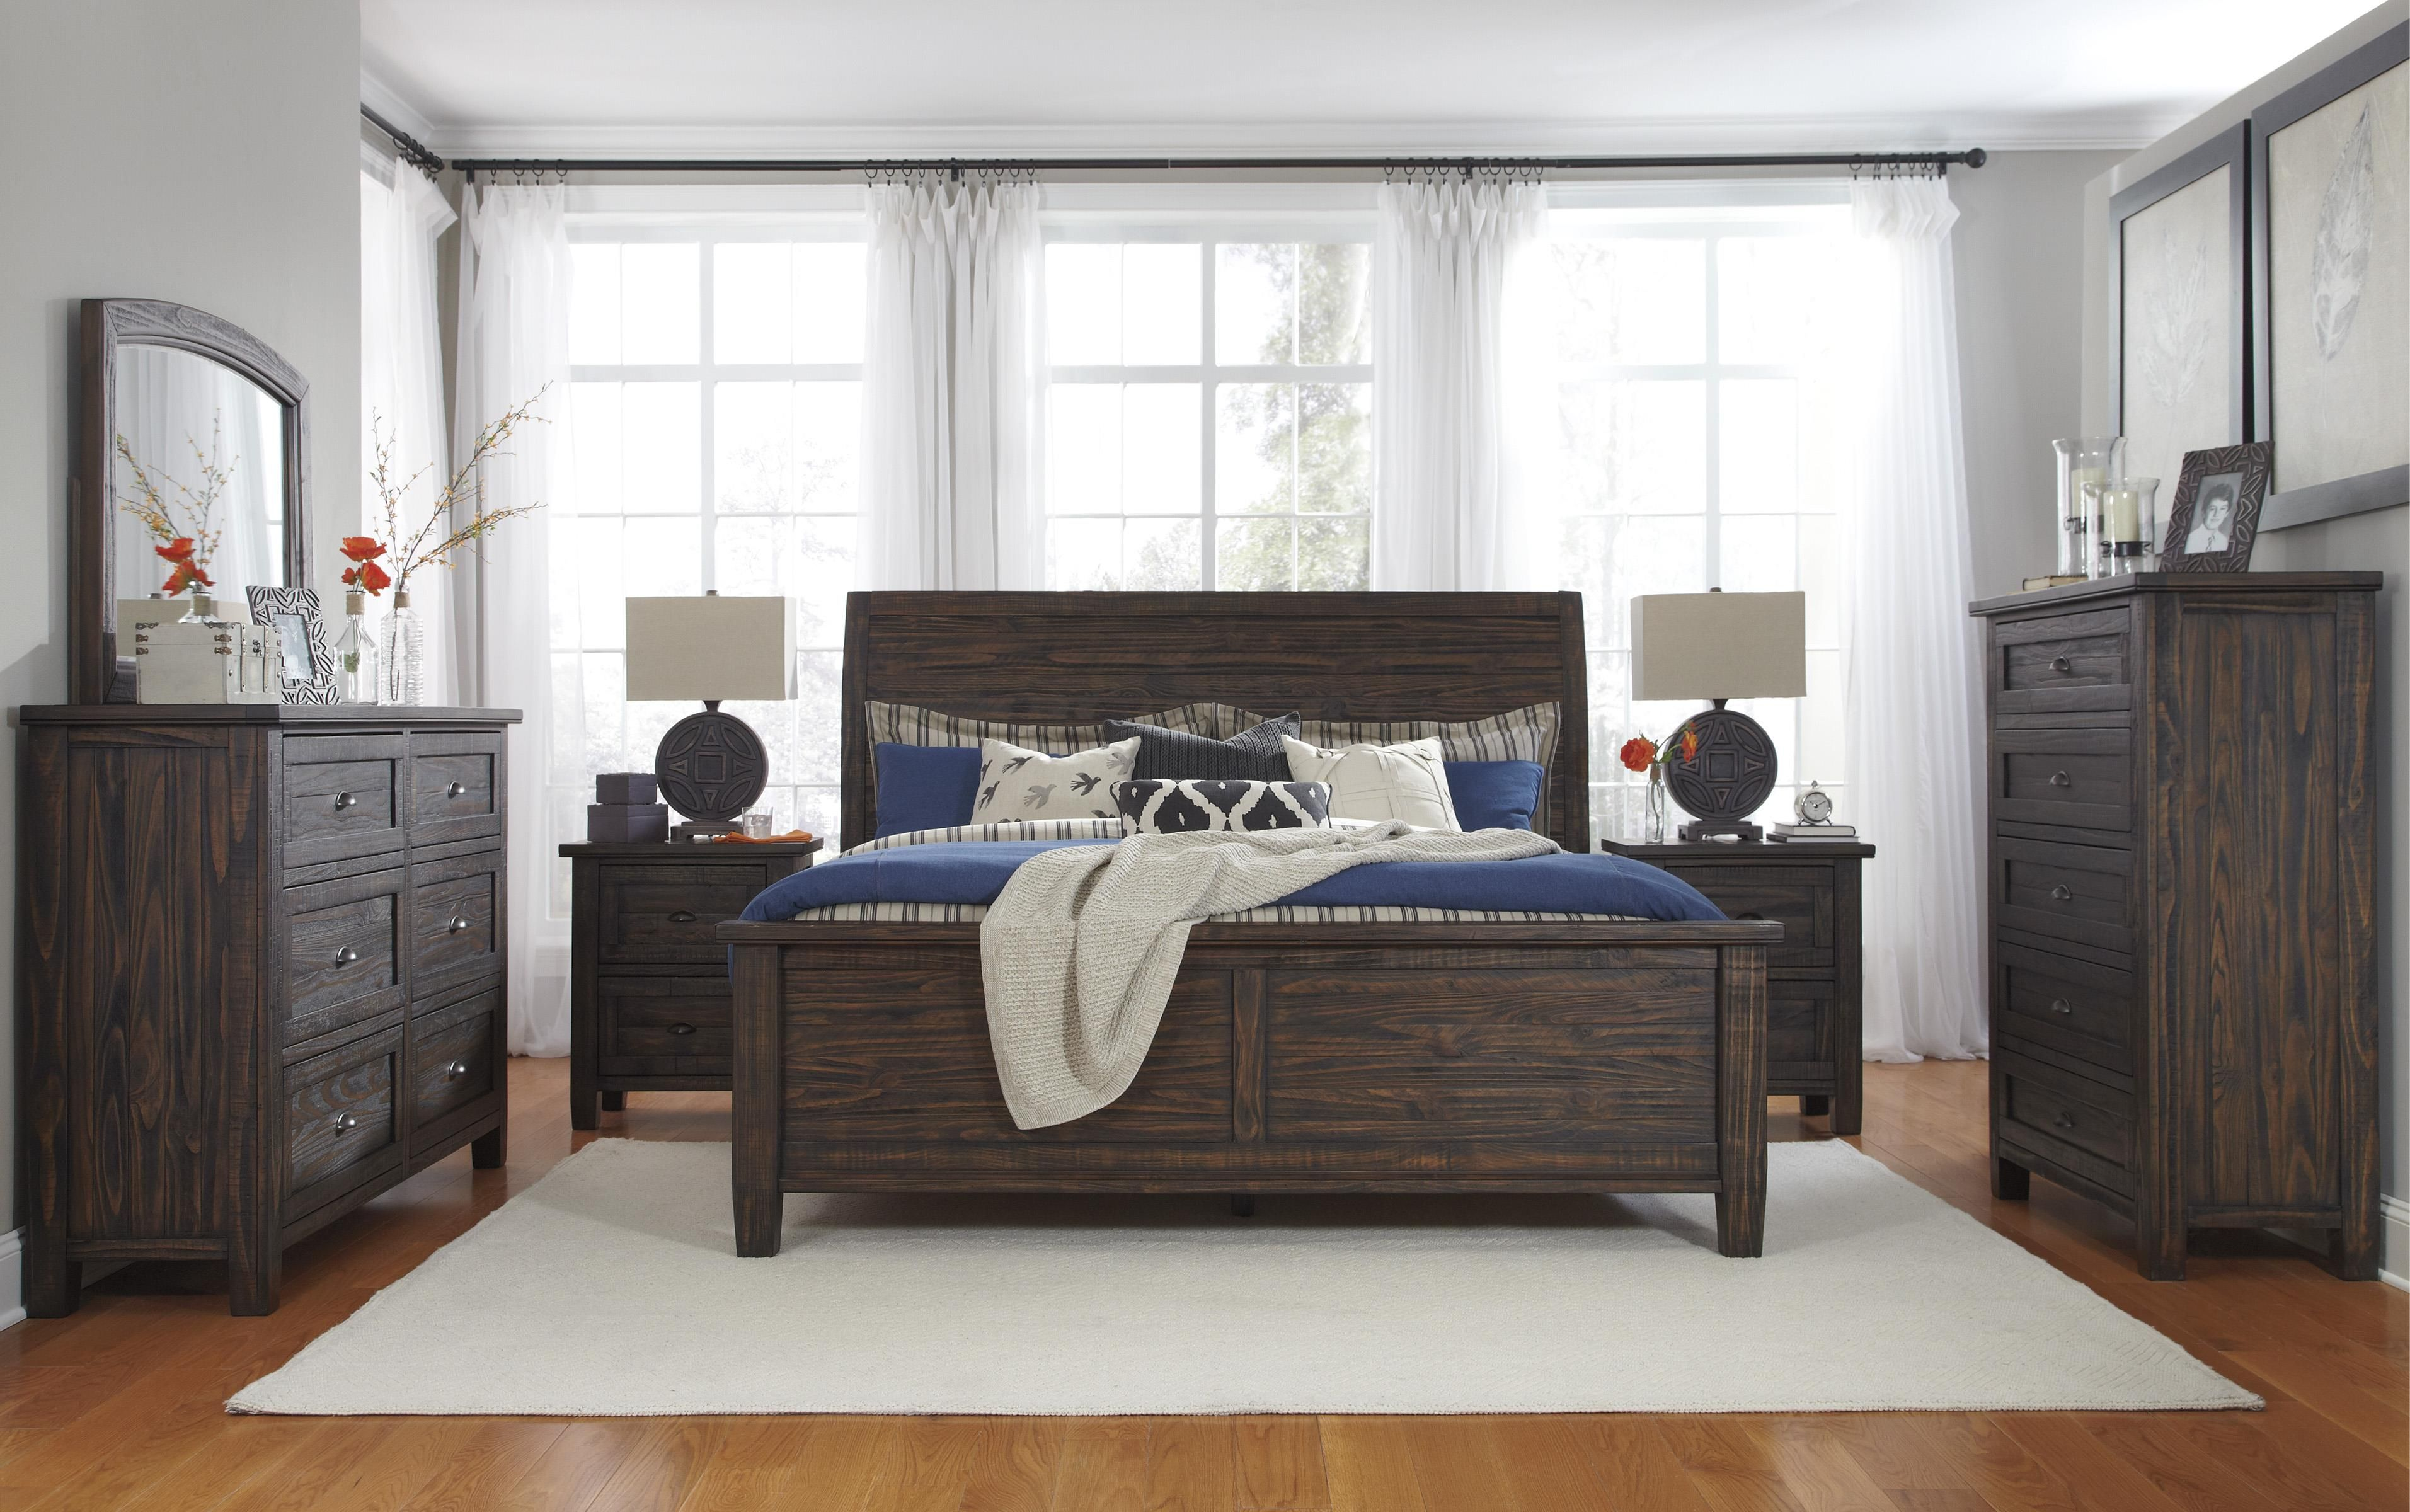 Trudell Queen Bedroom Group By Signature Design By Ashley Living Room Sets Furniture Rustic